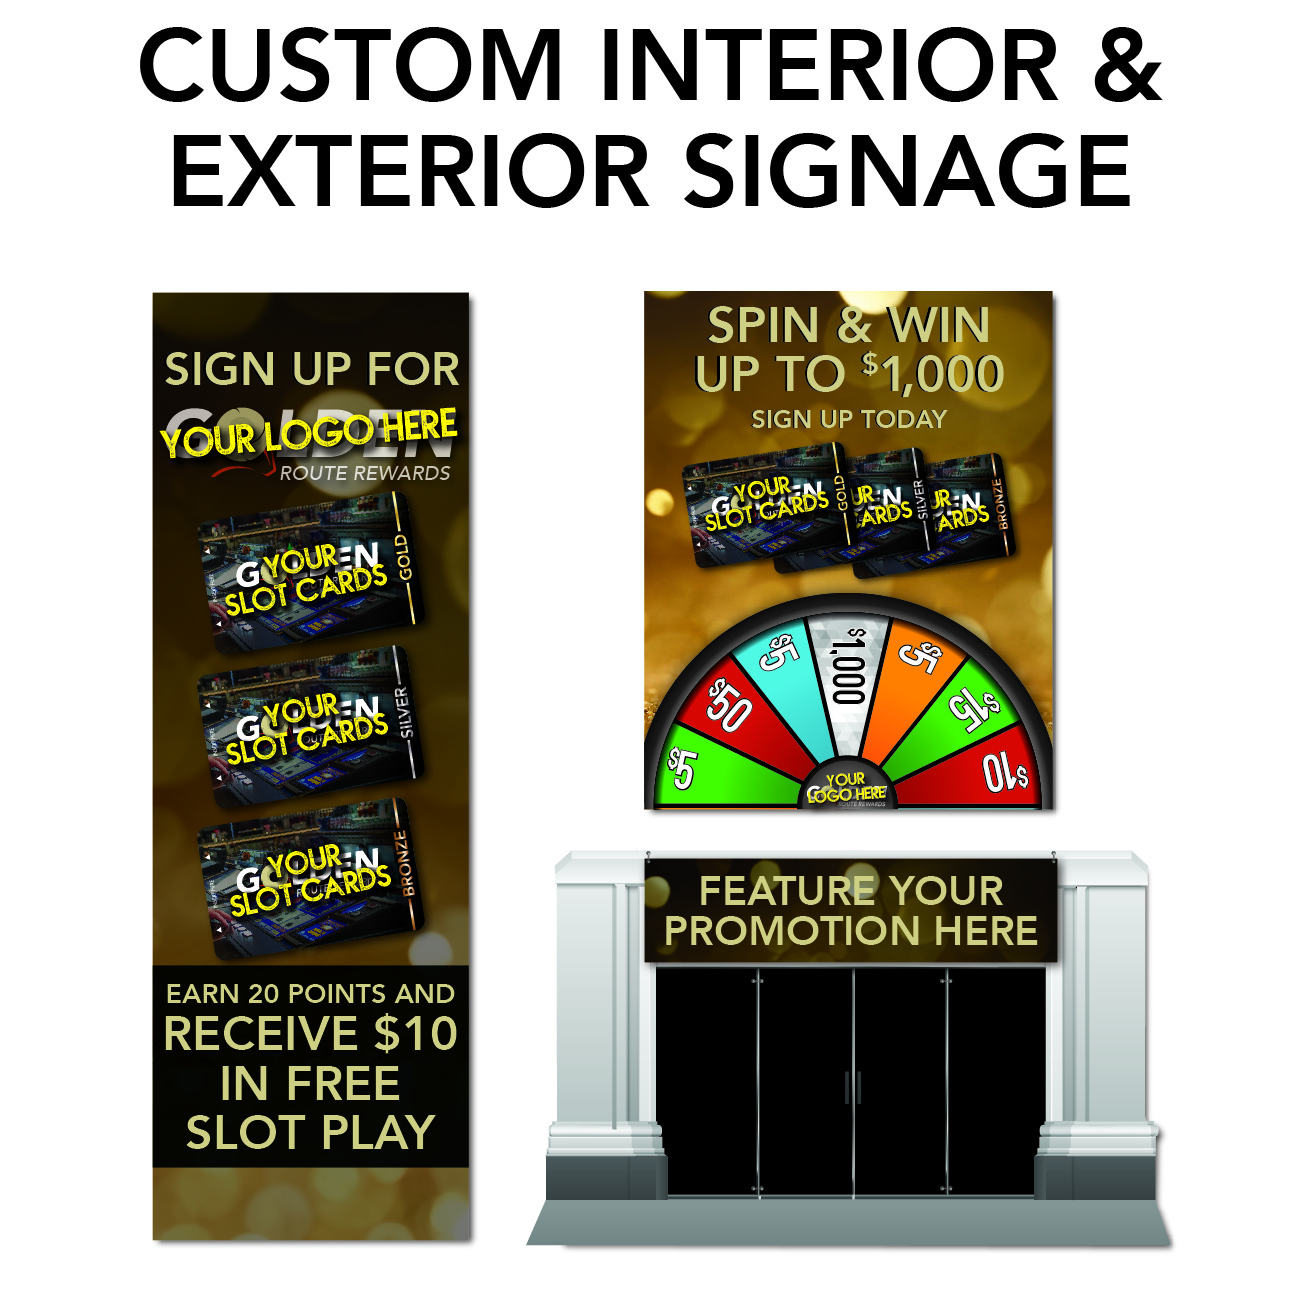 gro route rewards marketing needs custom interior and exterior signage